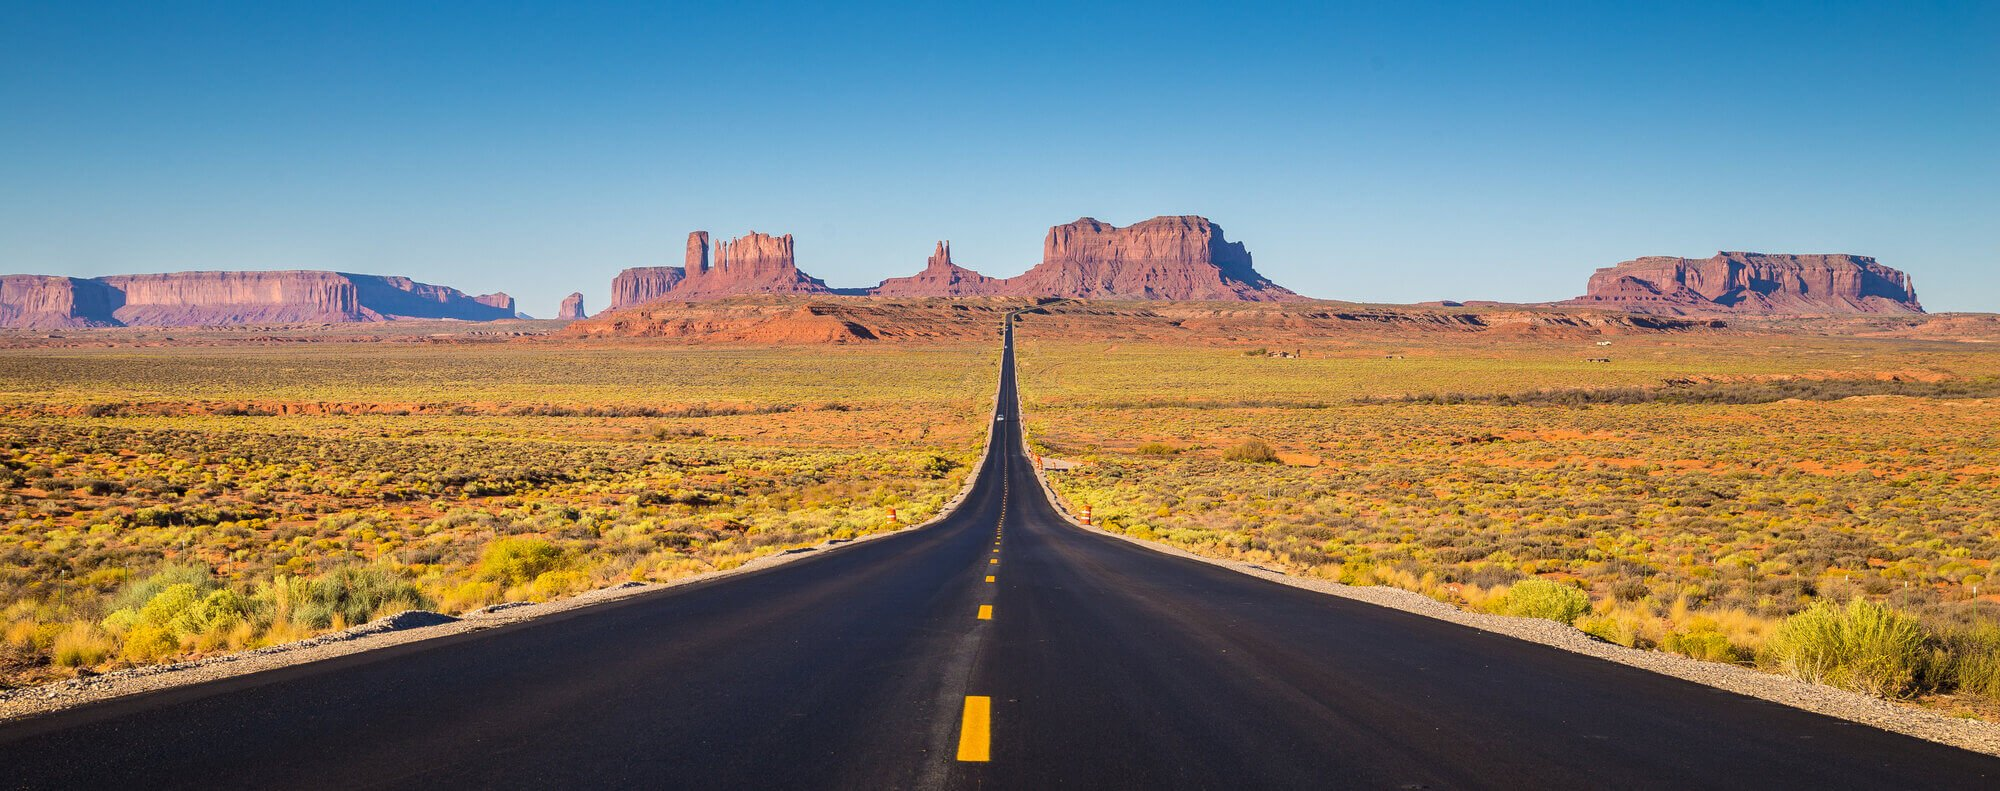 Our epic USA road trips bring you the ultimate drivecations!